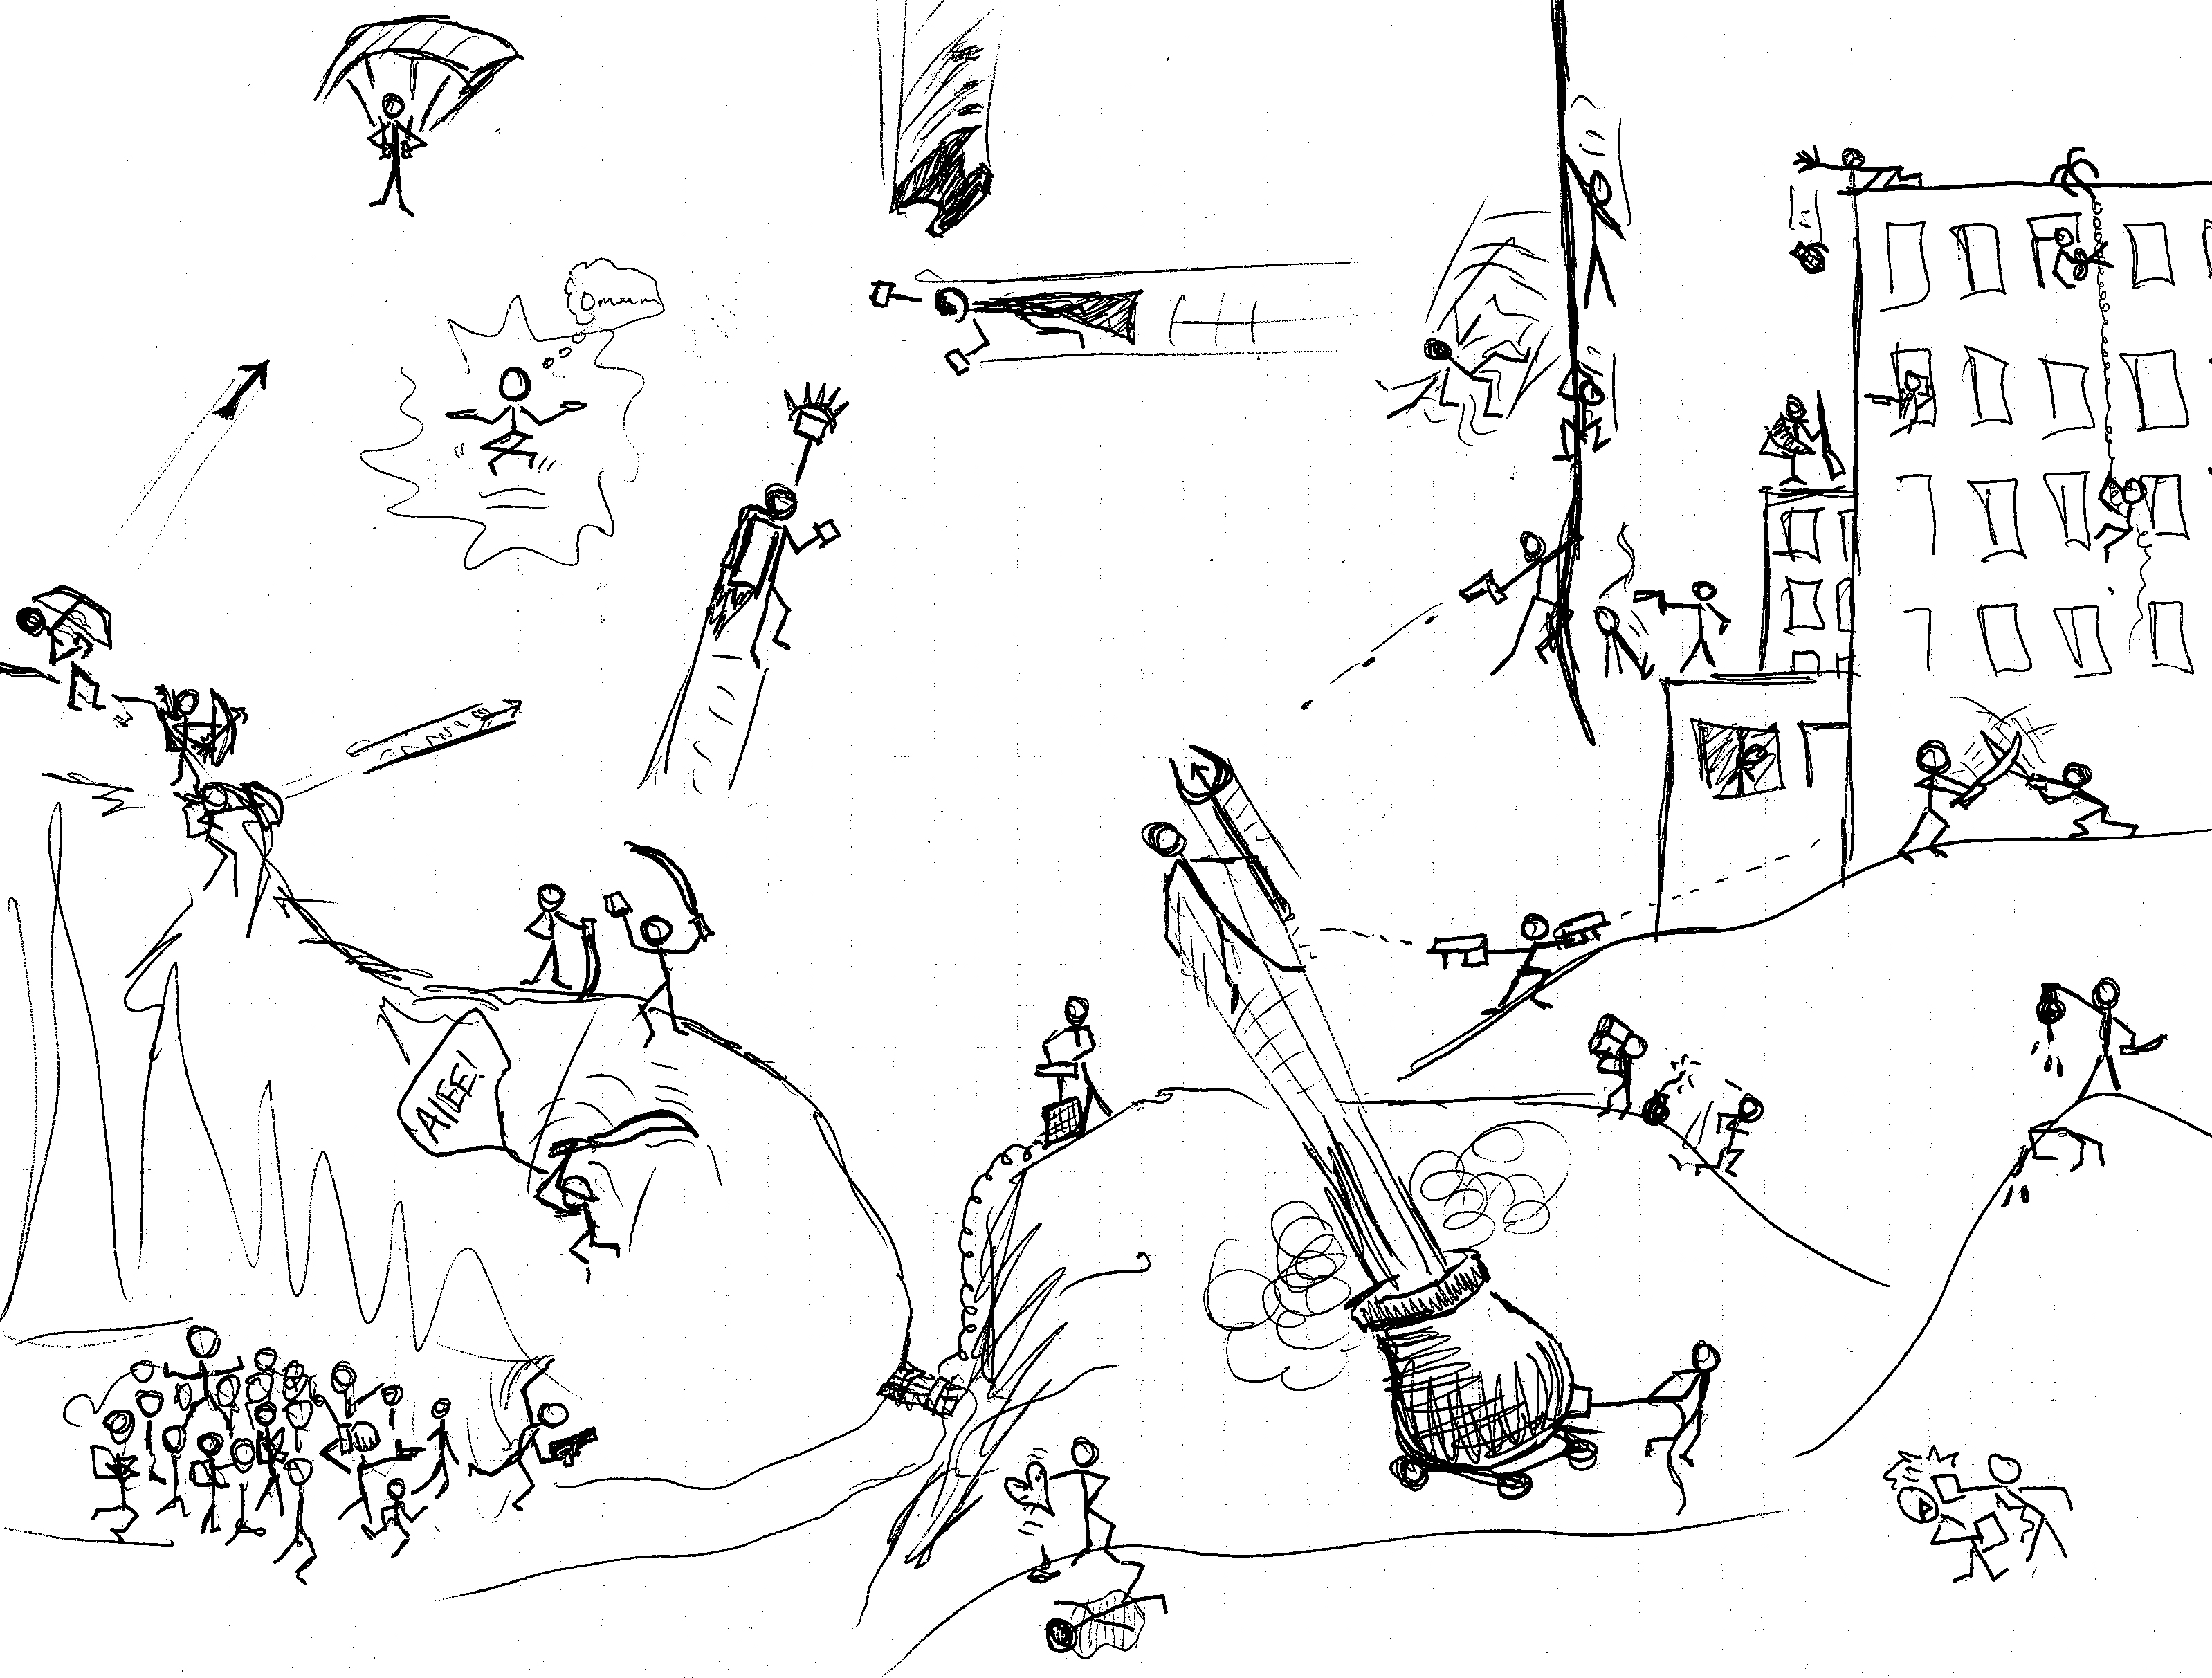 Stickman war drawings